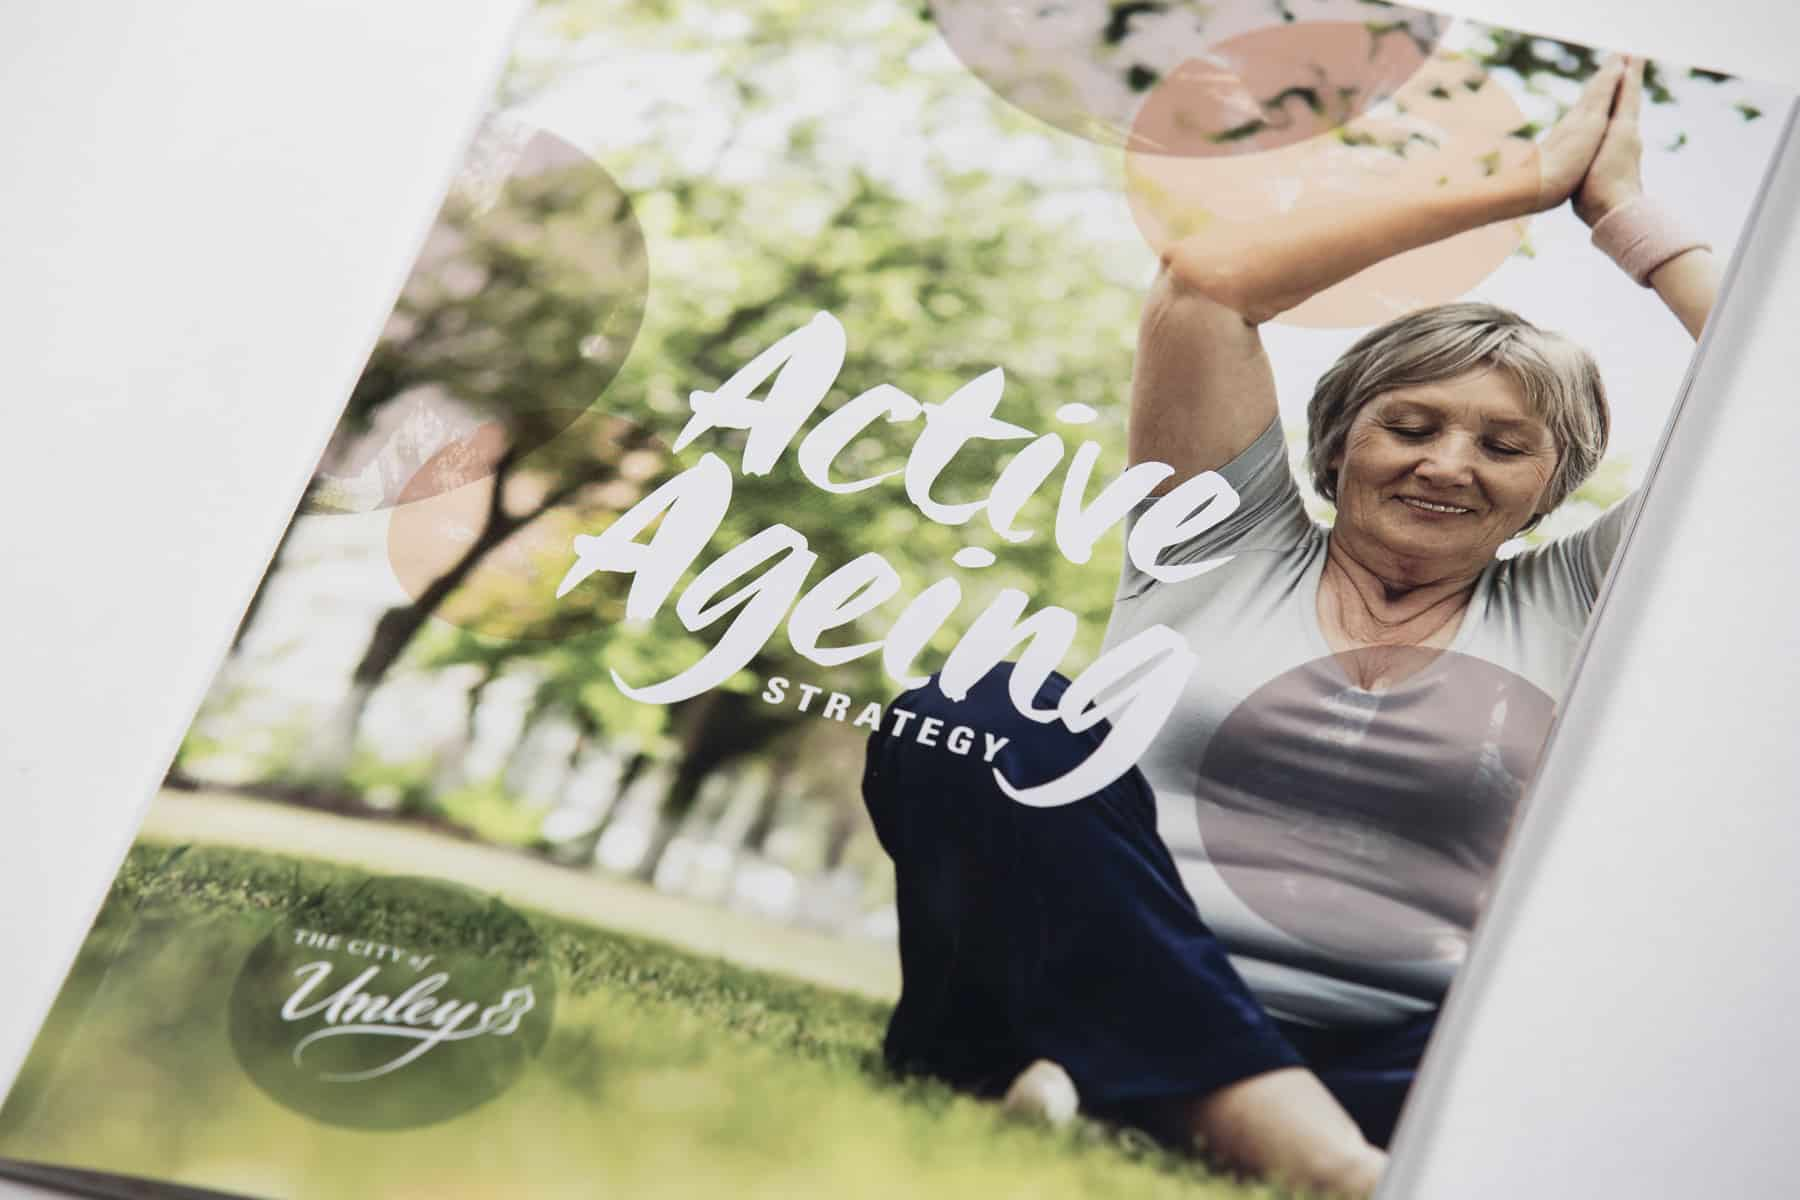 Active Ageing Strategy design by Flux Visual Communication for the City of Unley